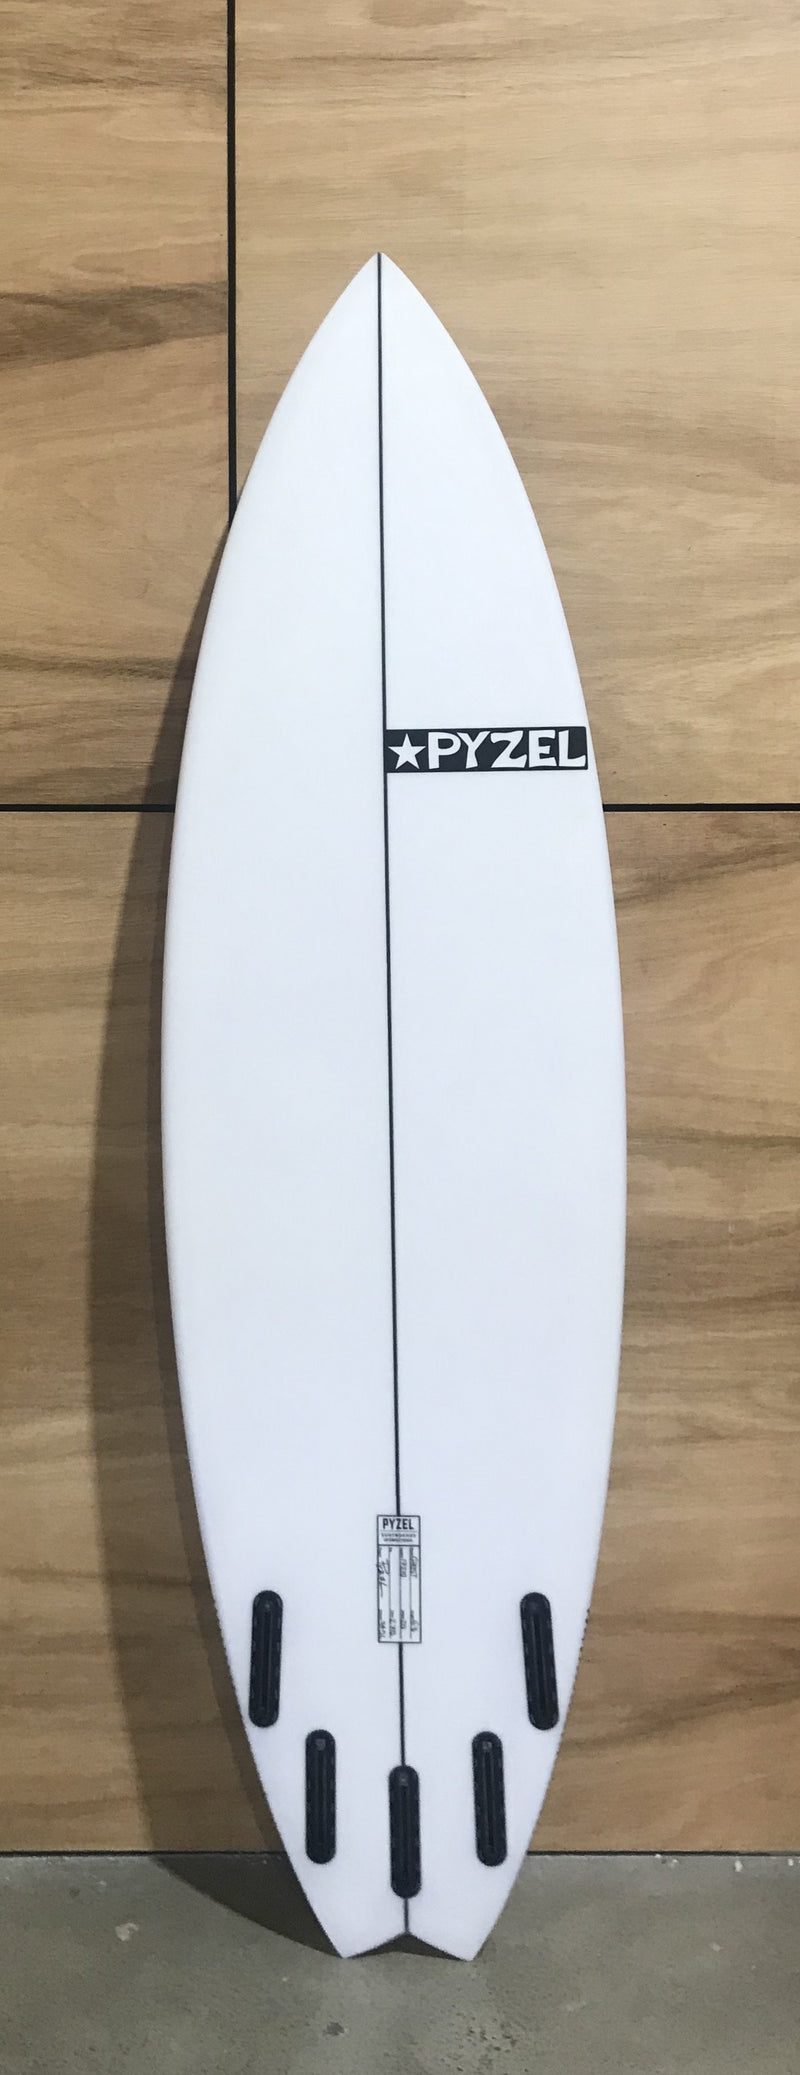 Pyzel The Ghost - Swallow Tail - Board Store PyzelSurfboard